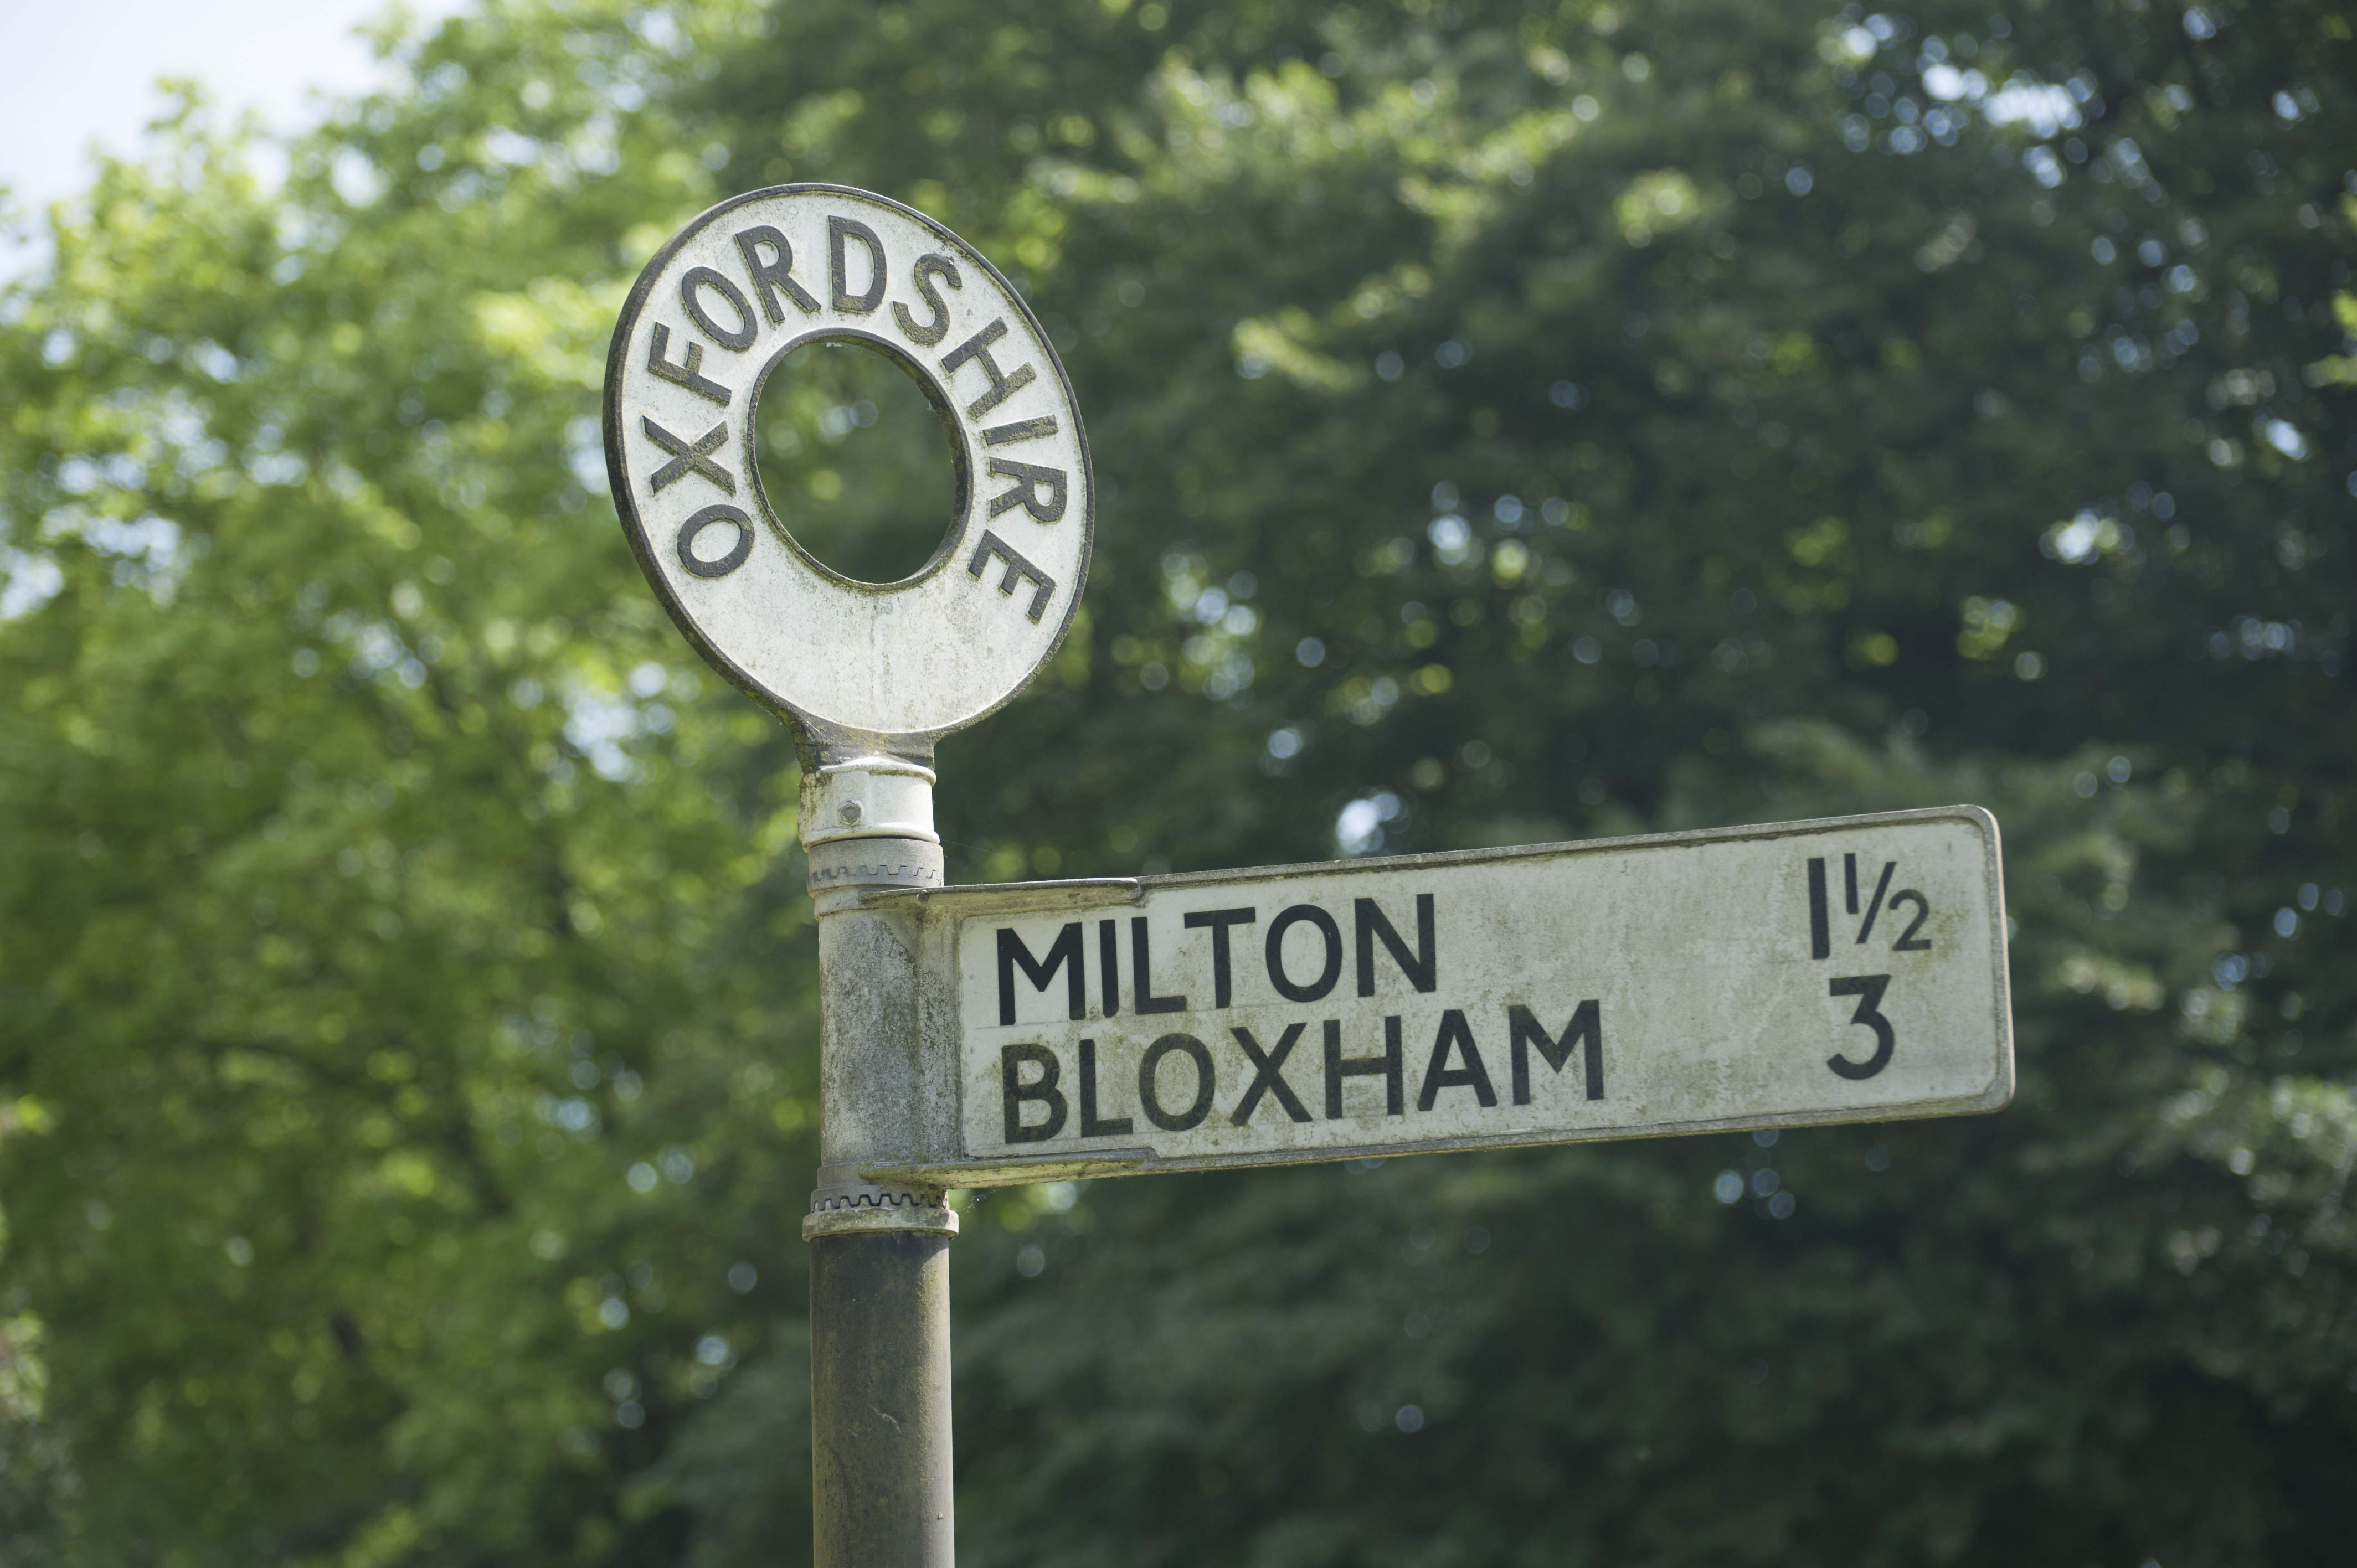 Signpost for Bloxham and Milton